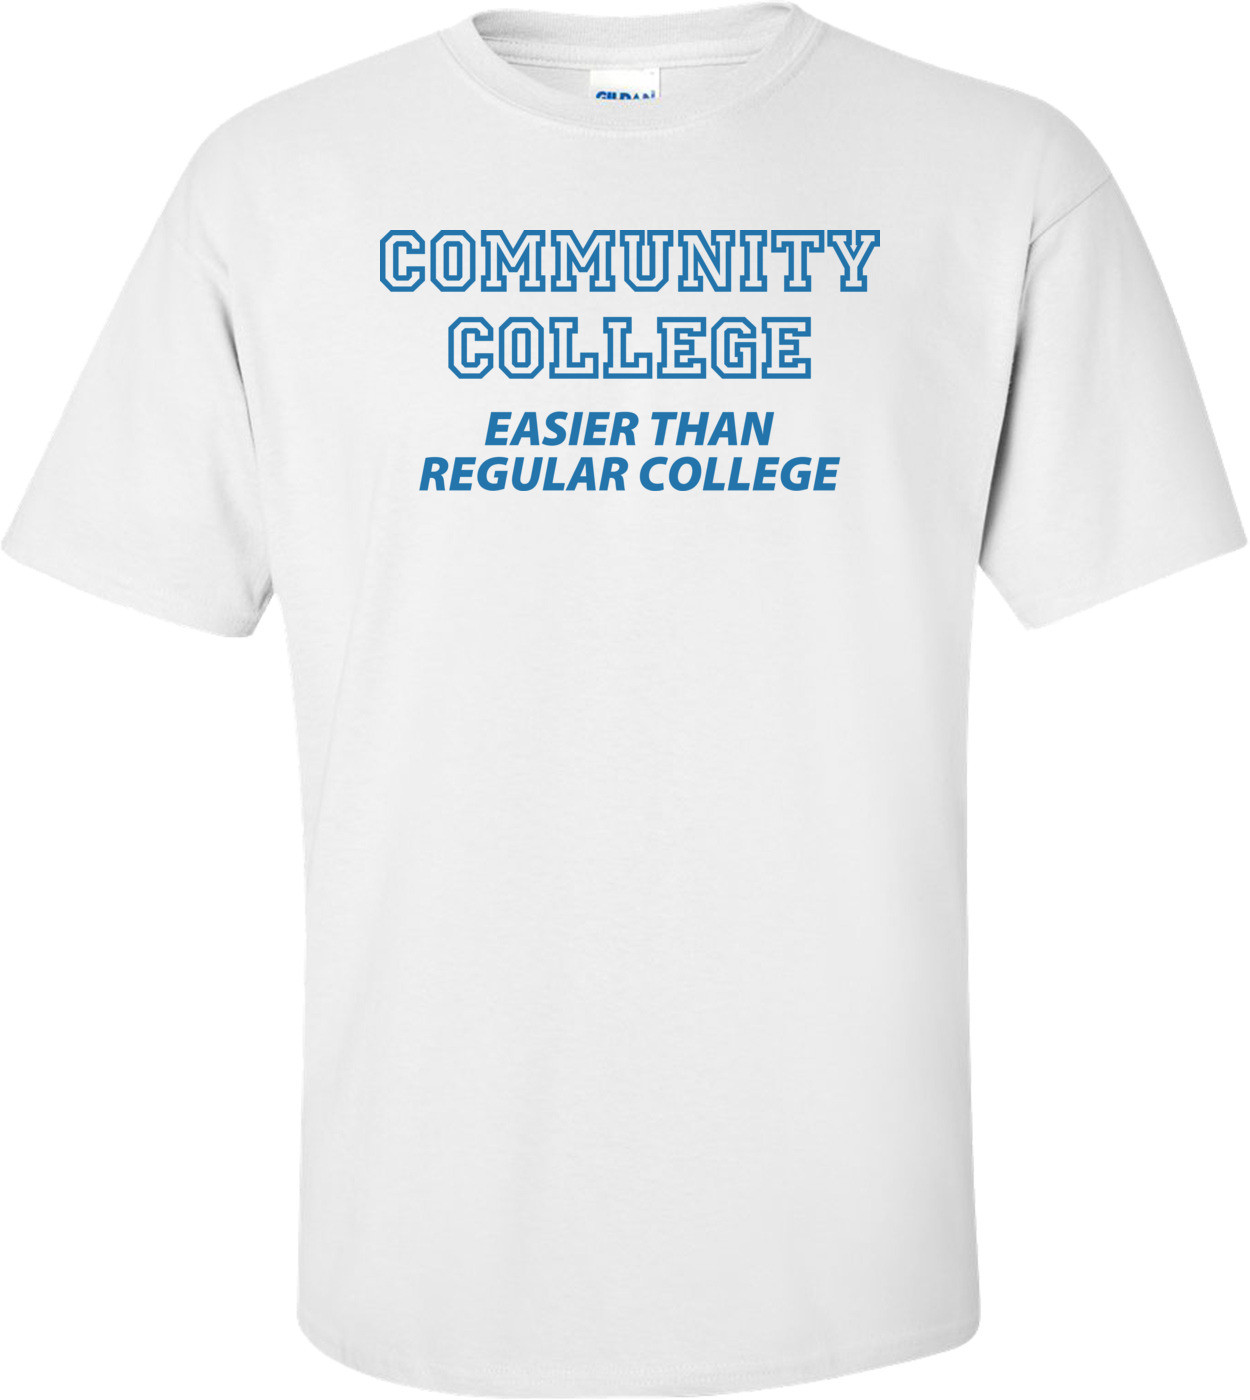 Community College Easier Than Regular College Funny T-shirt